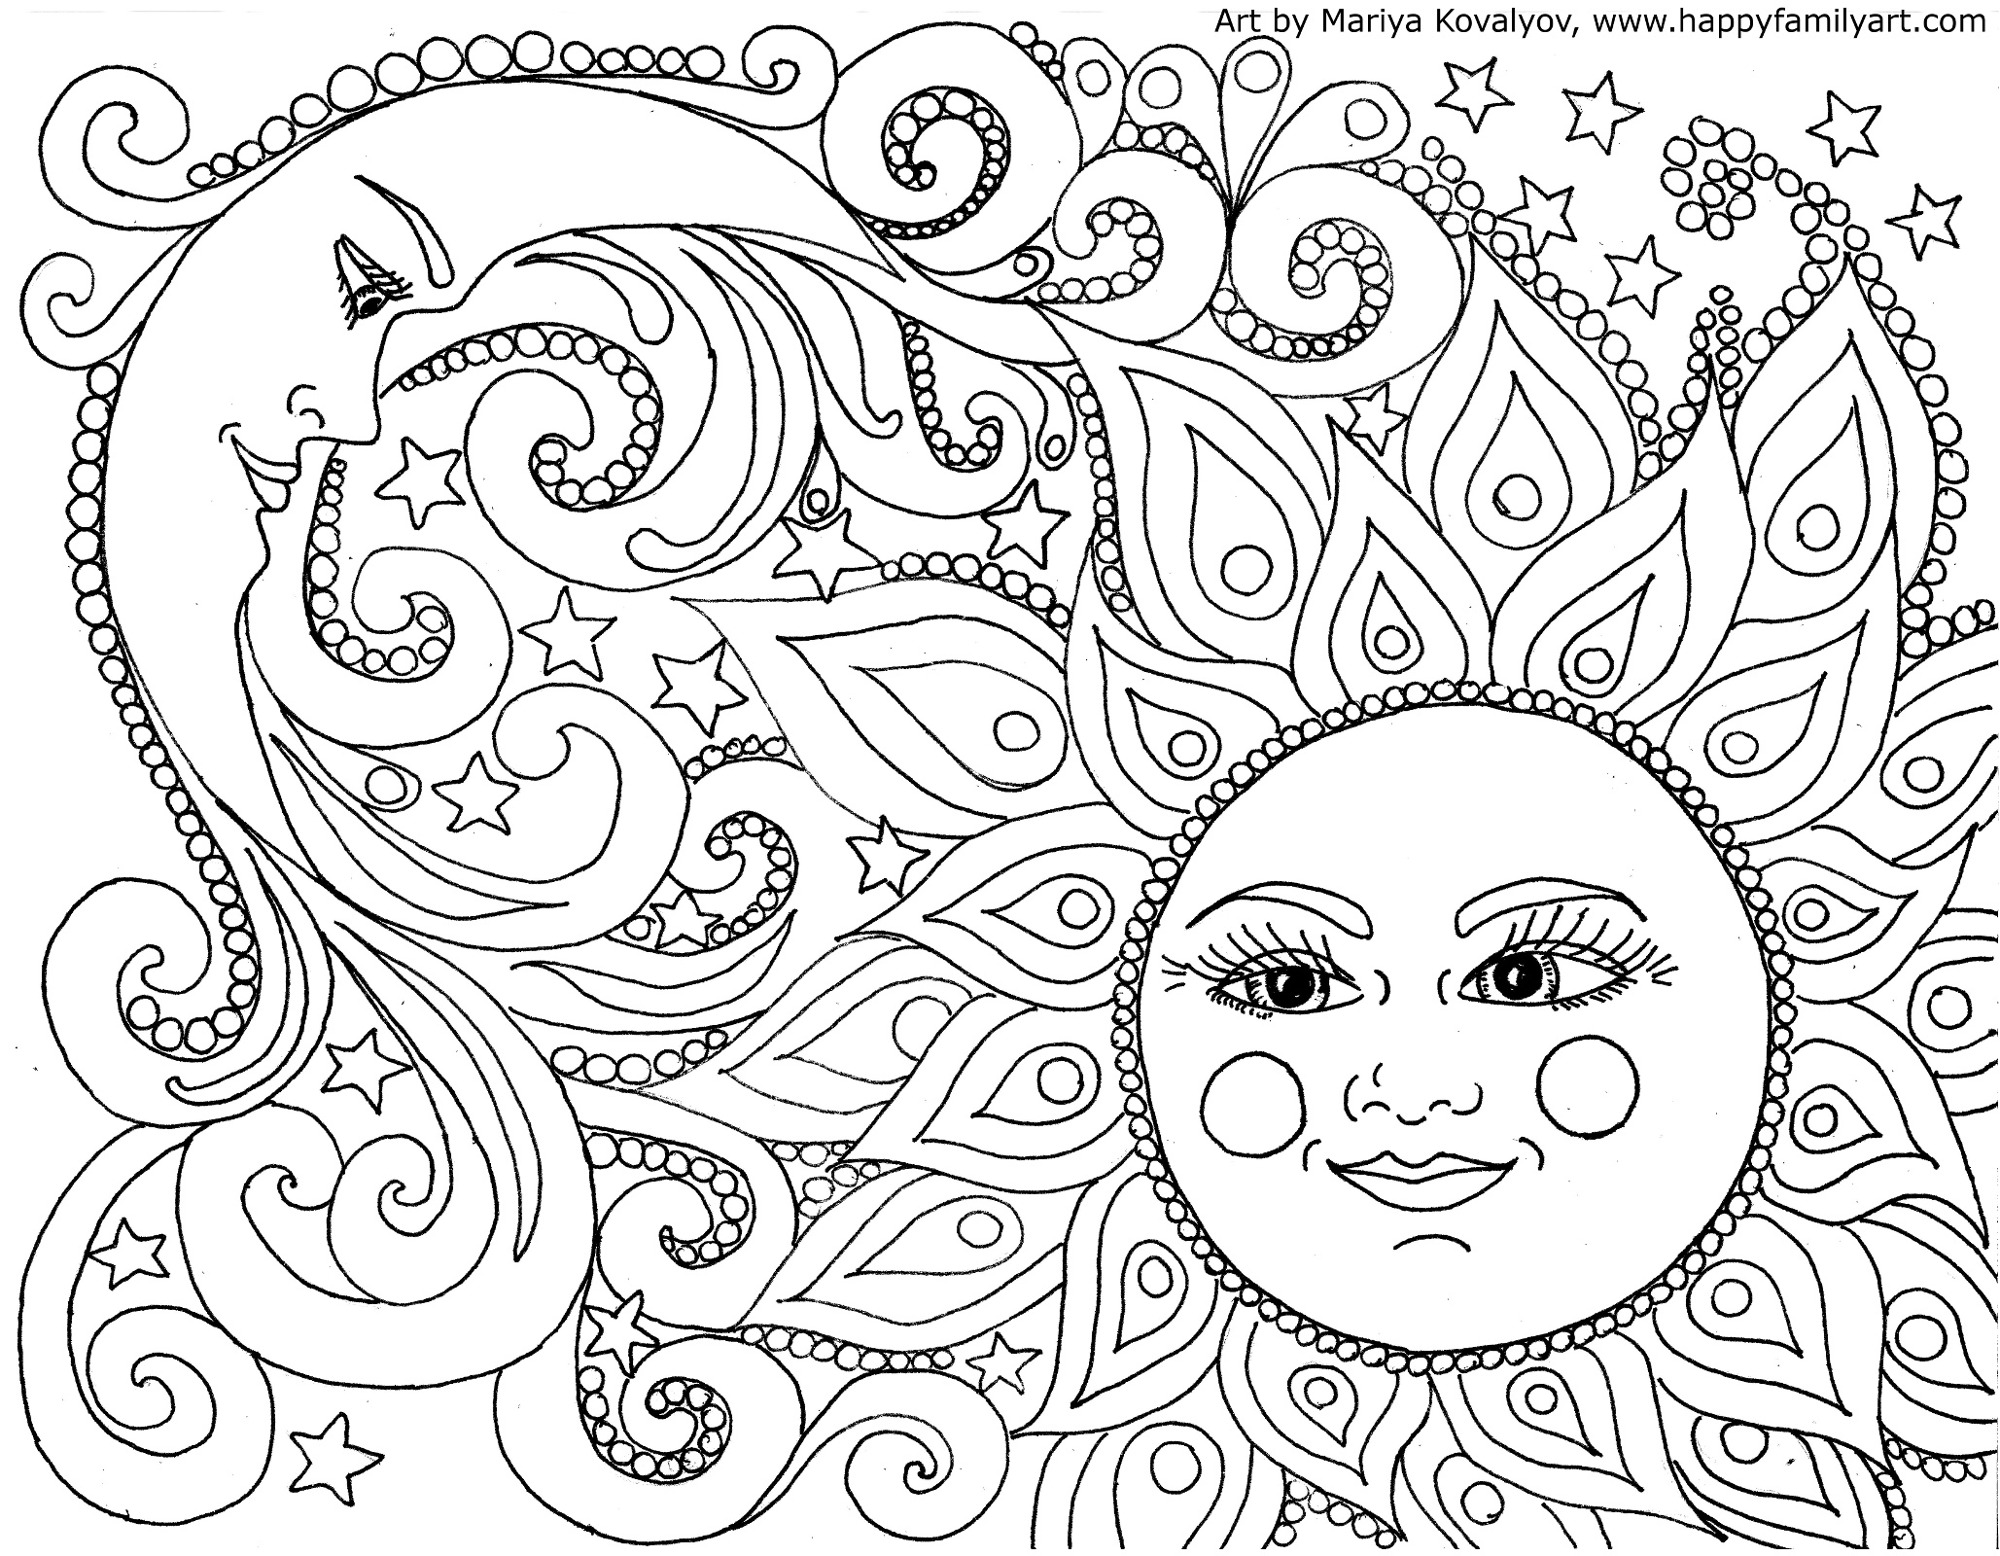 Happy Family Art Original And Fun Coloring Pages Color Pages